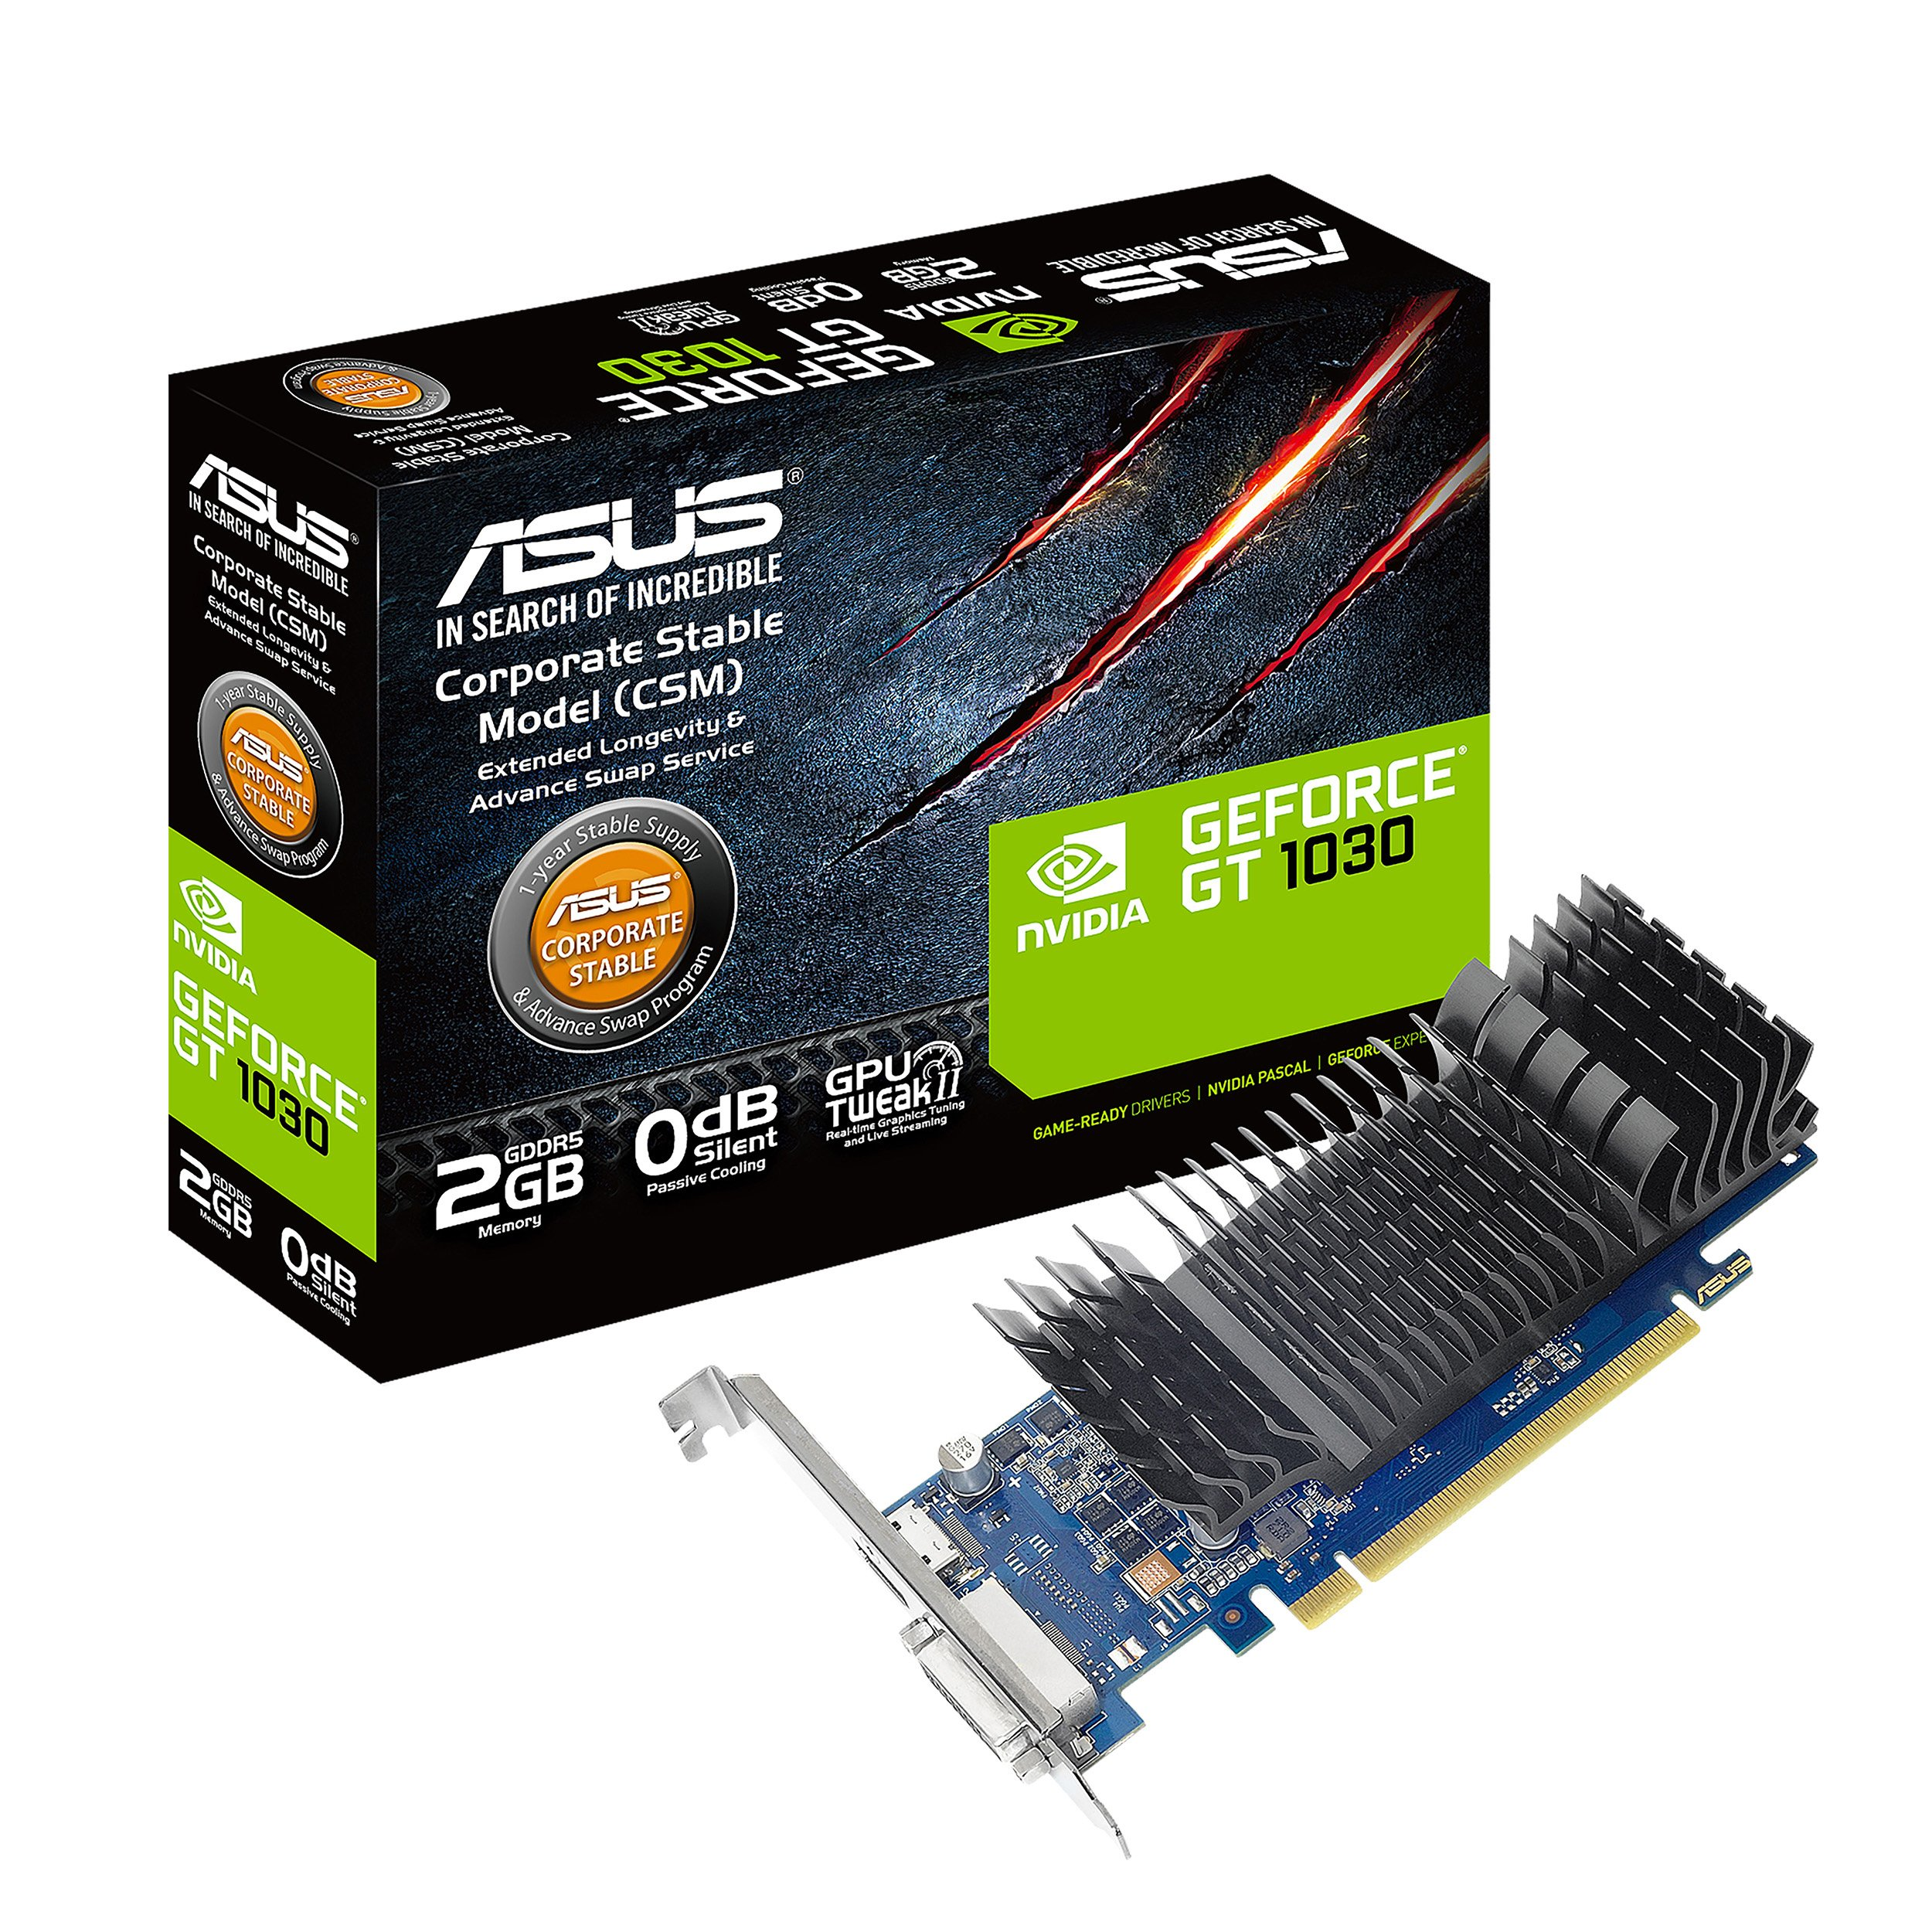 ASUS GeForce GT 1030 2GB GDDR5 HDMI DVI Graphics Card (GT1030-2G-CSM) by Asus